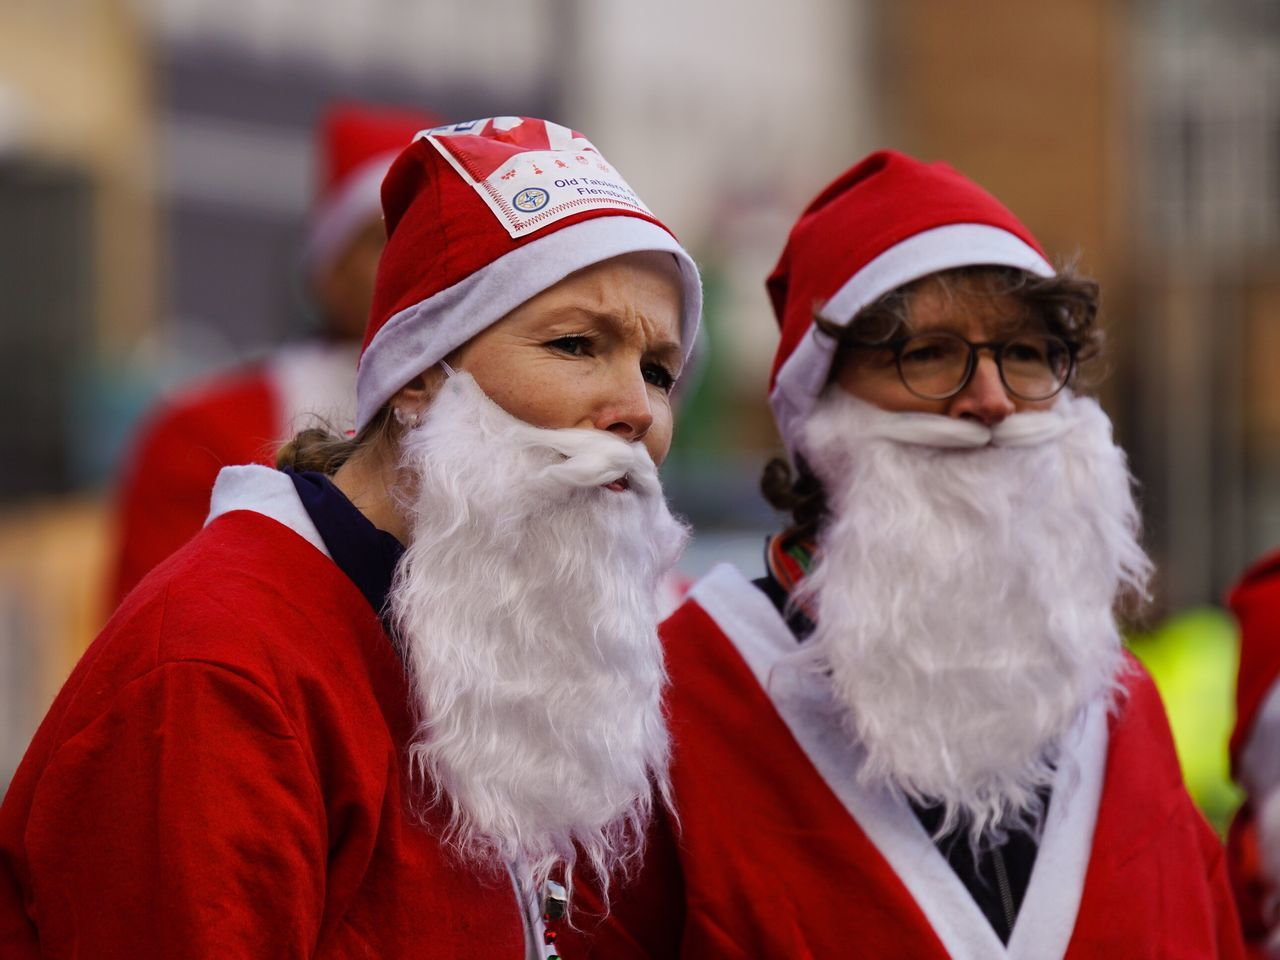 Beautiful stock photos of weihnachtsmann, two people, red, christmas, real people